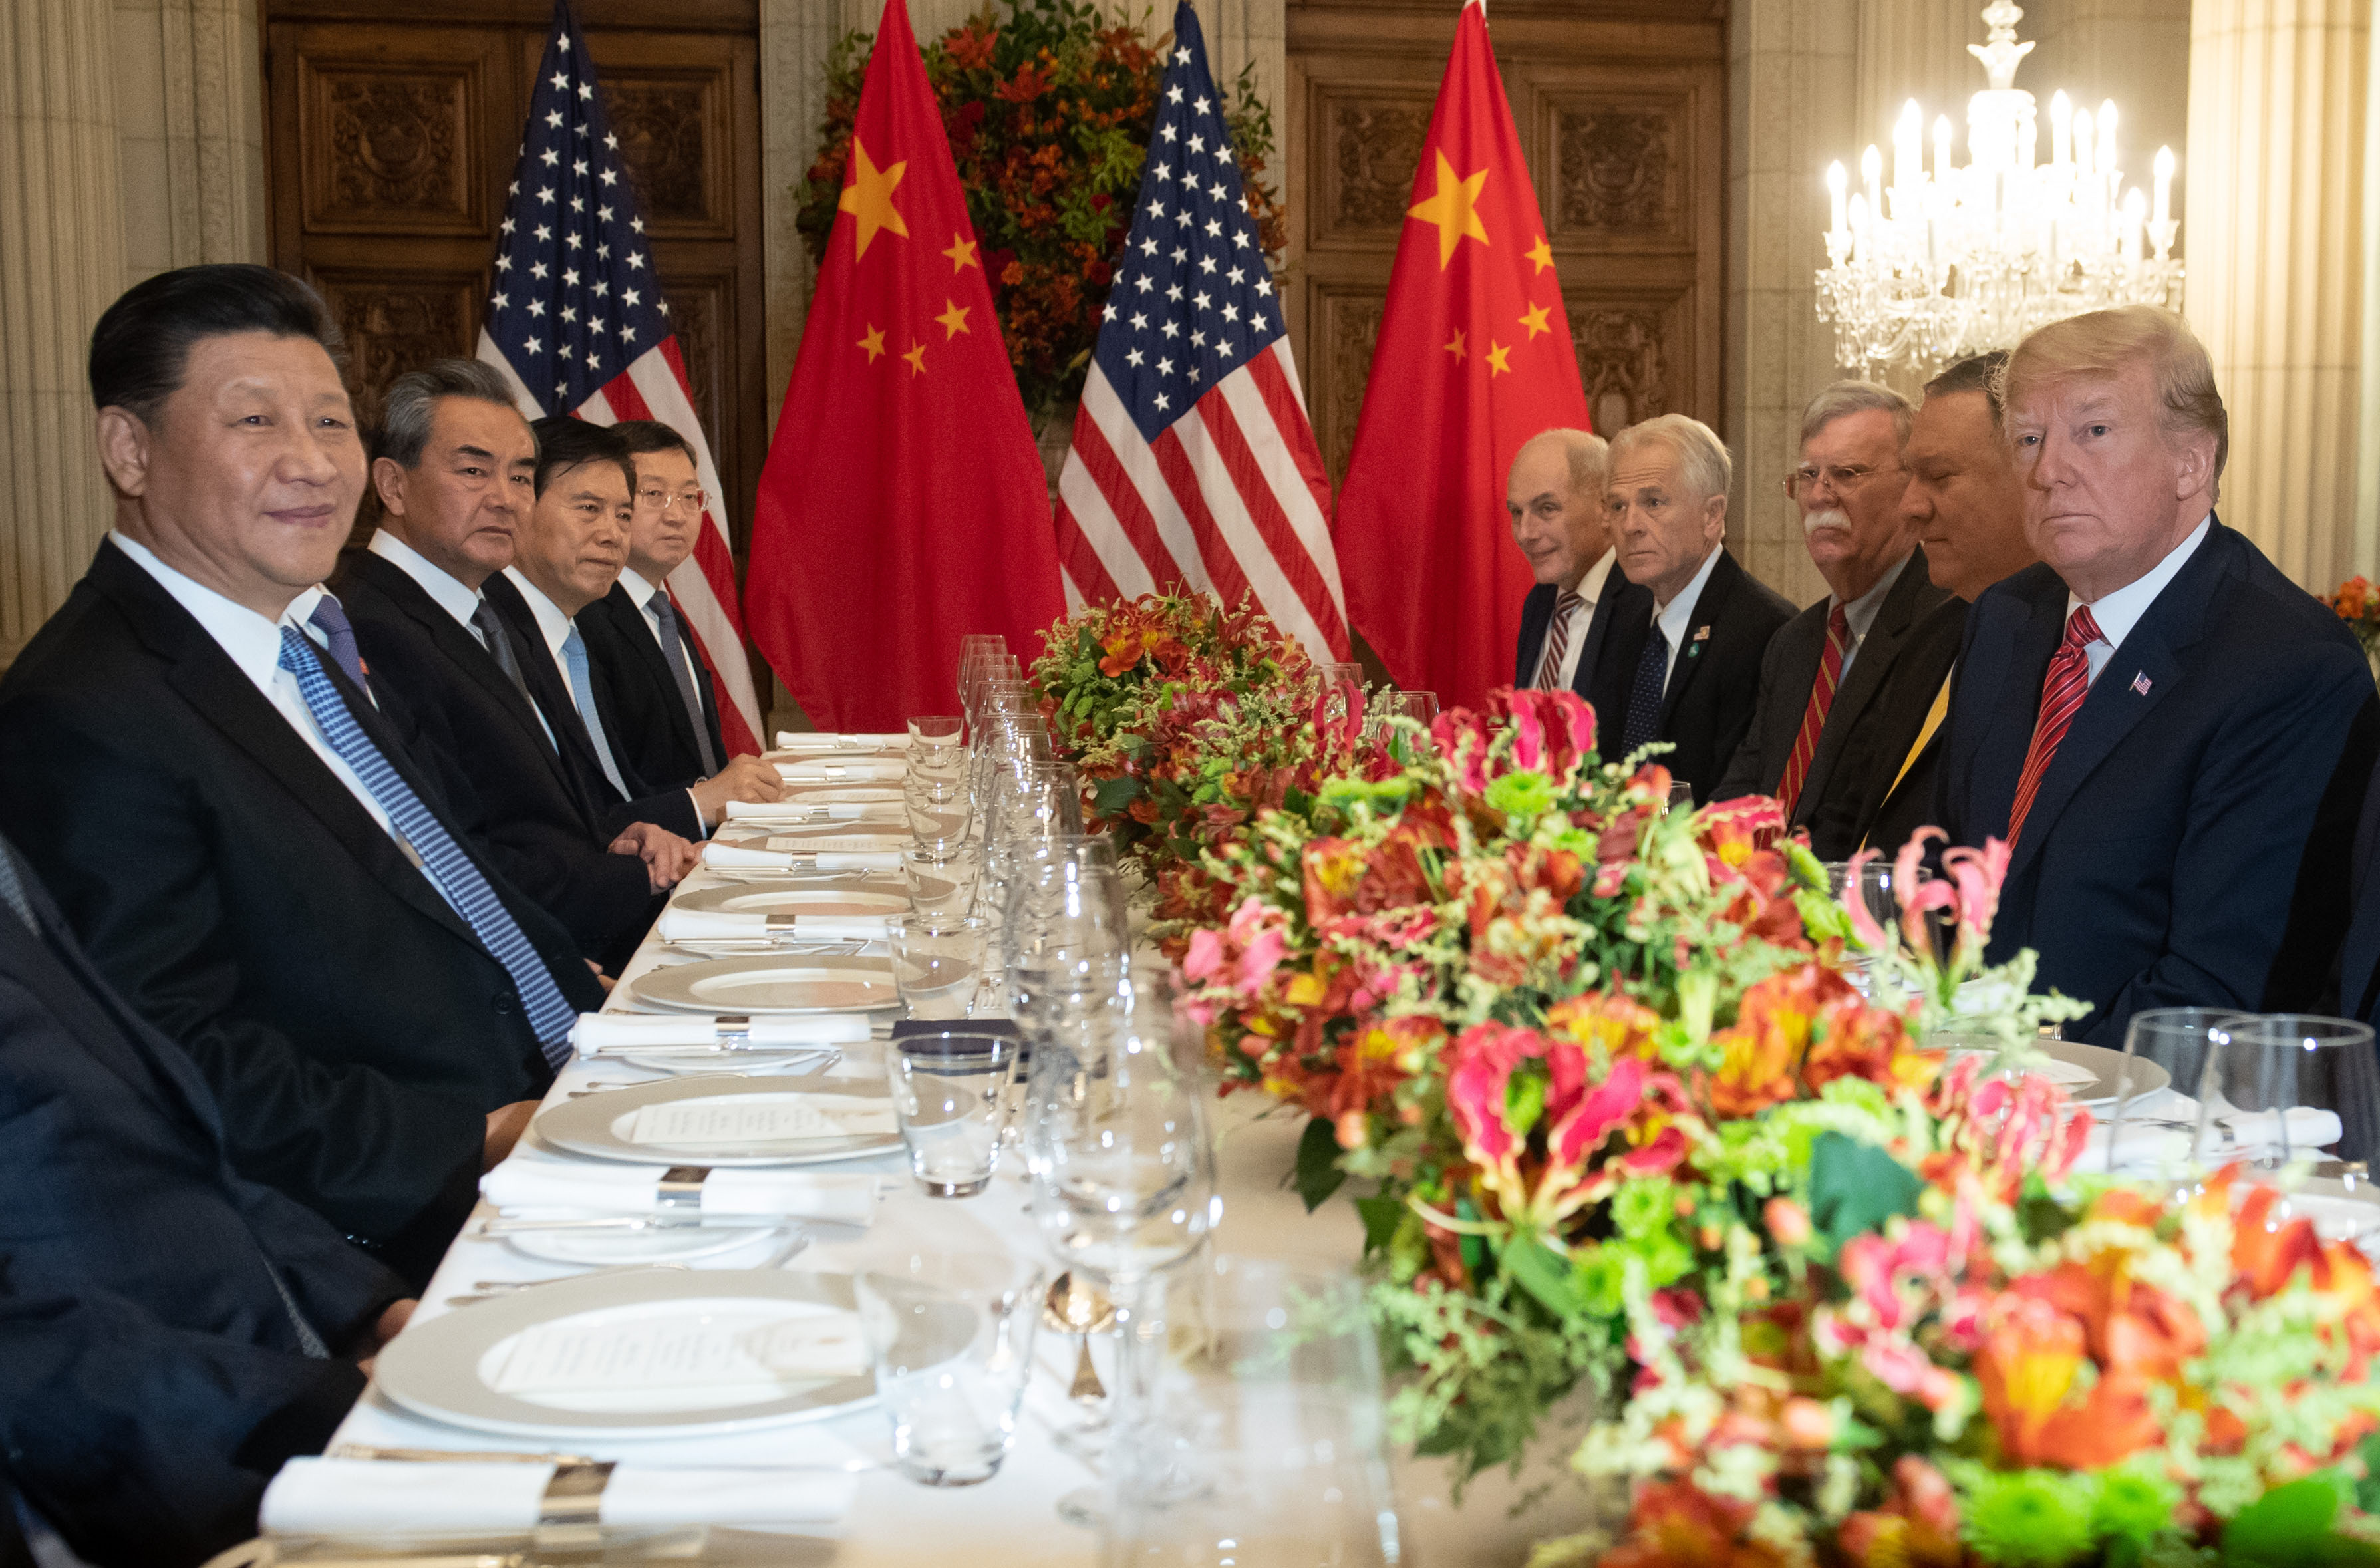 US President Donald Trump (R) US Secretary of State Mike Pompeo (2-R) and members of their delegation hold a dinner meeting with China's President Xi Jinping (L) Chinas Foreign Affairs Minister Wang Yi (2-L) and Chinese government representatives, at the end of the G20 Leaders' Summit in Buenos Aires, on December 01, 2018. (SAUL LOEB/AFP/Getty Images)